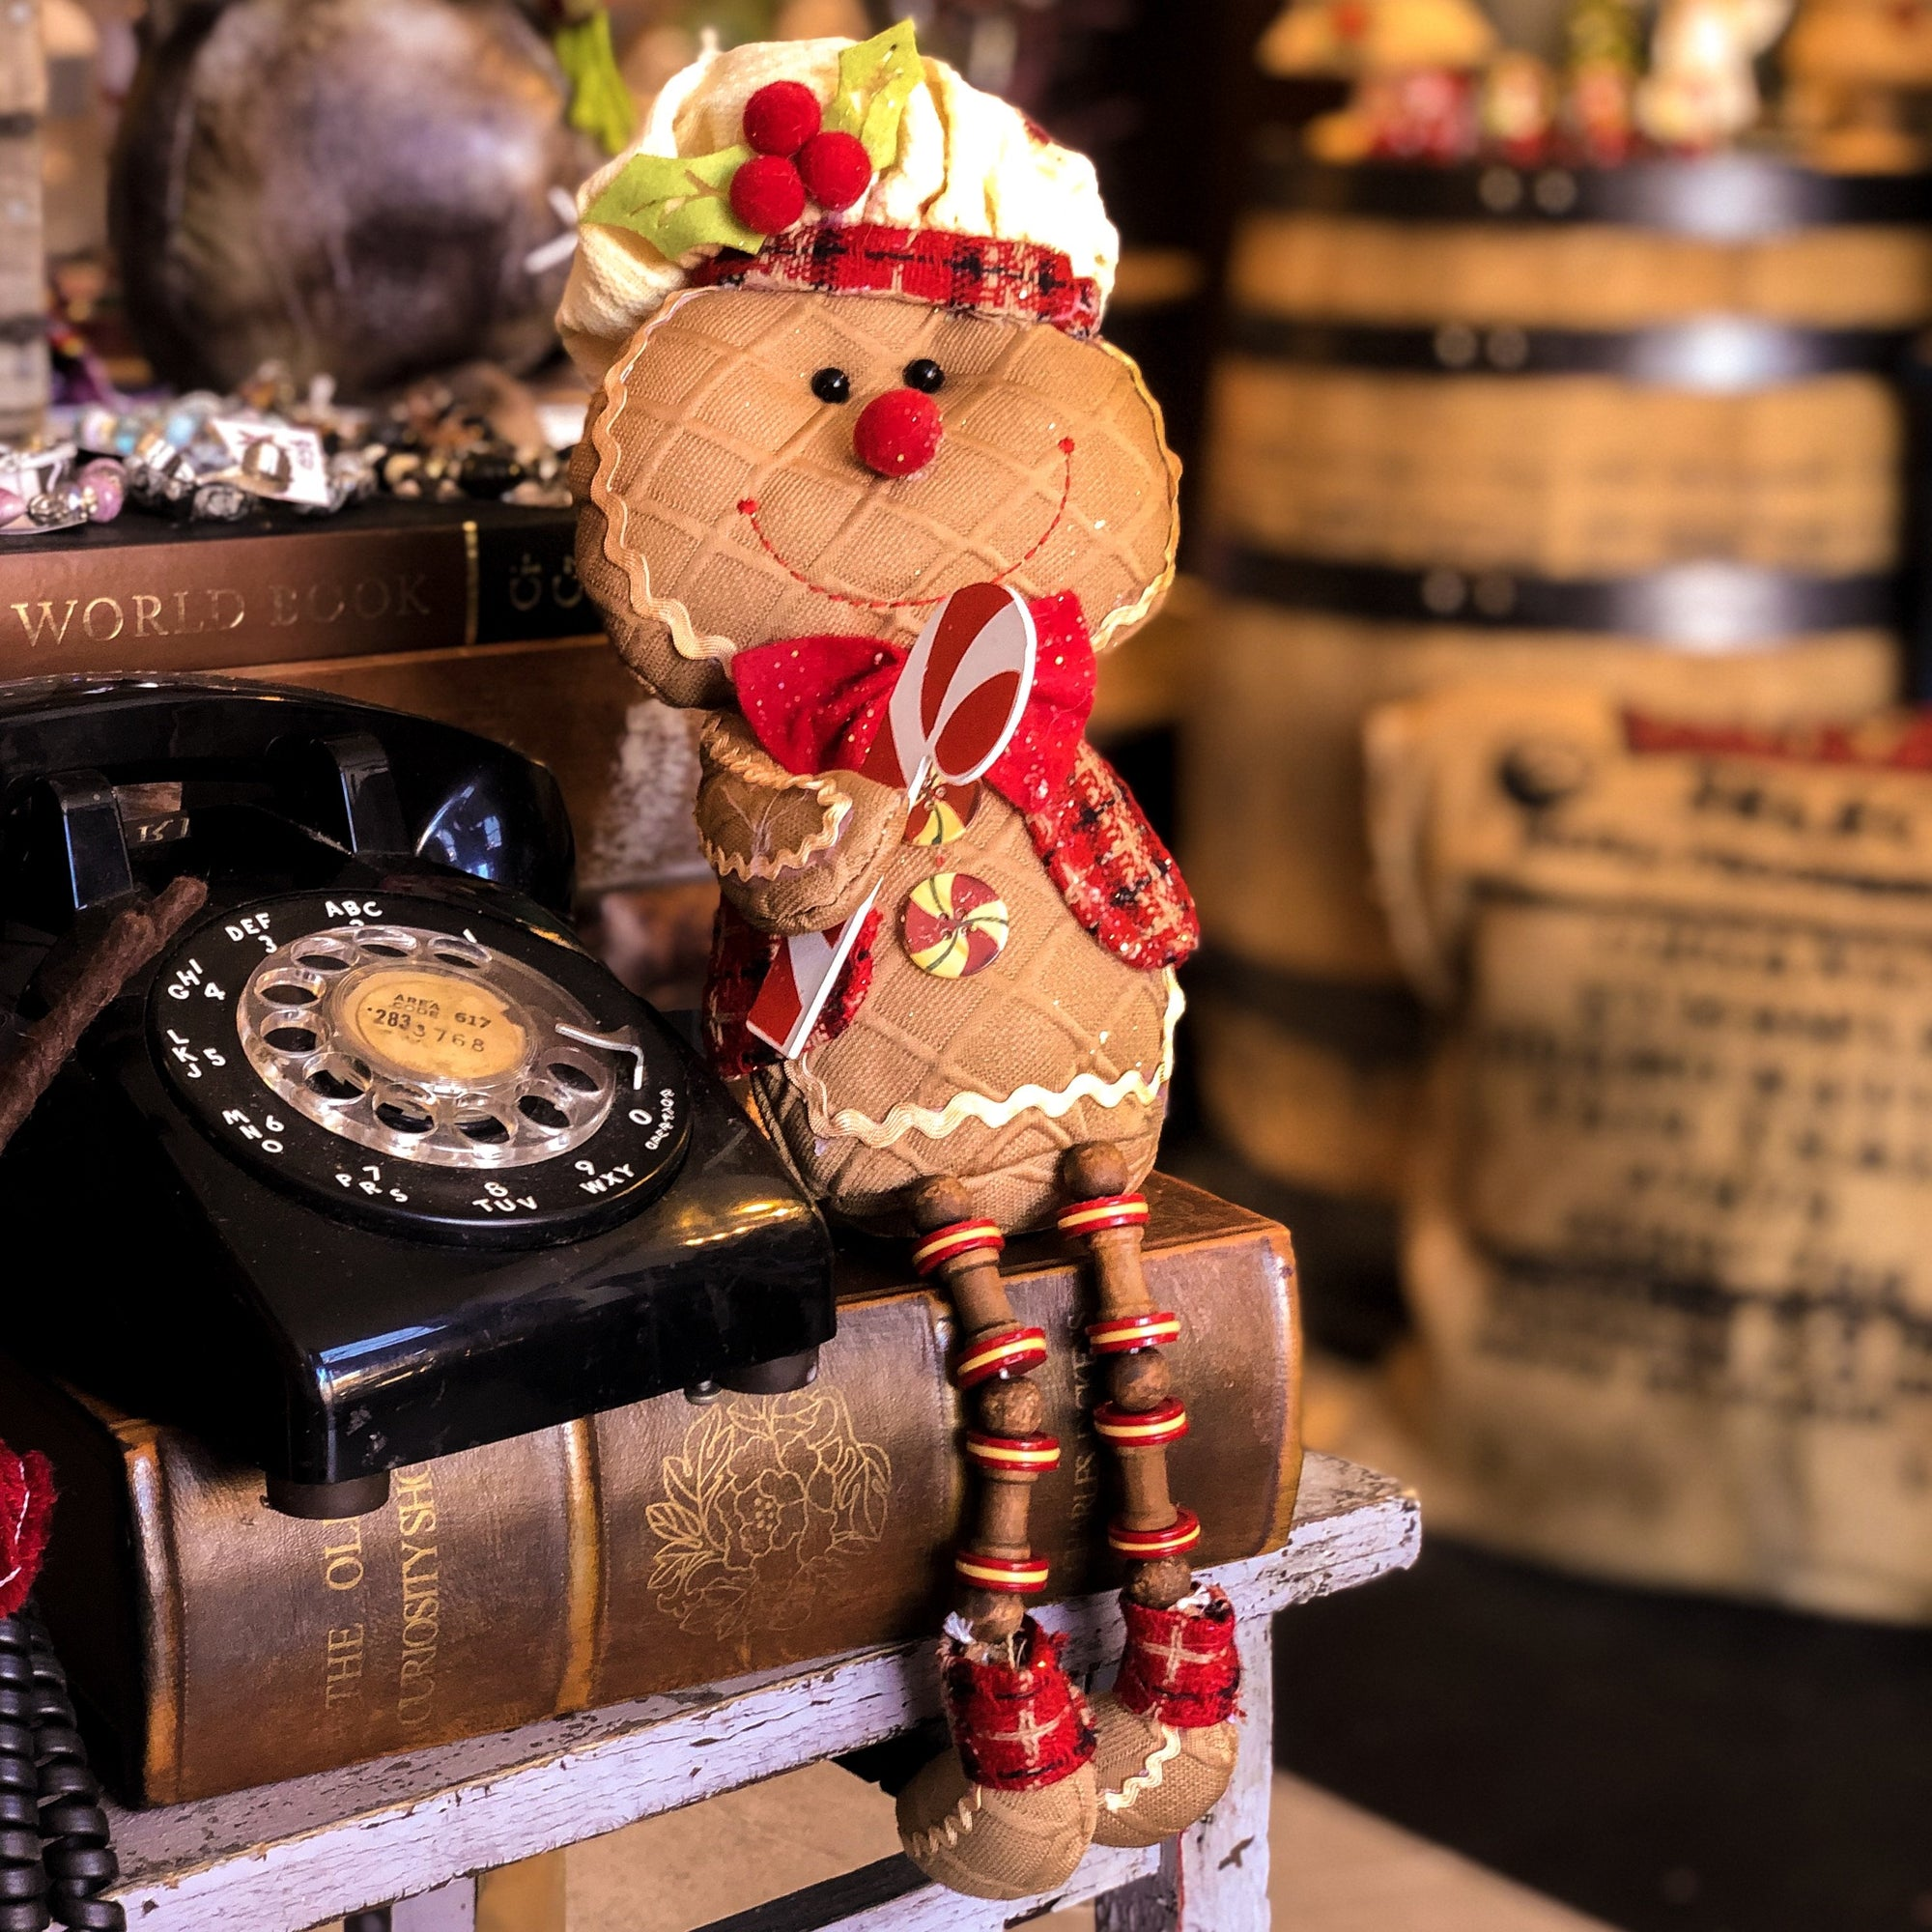 Buy Glitter the Gingerbread Shelf Sitter from Walking Pants Curiosities, the Most un-General Gift Store in Downtown Memphis, Tennessee!